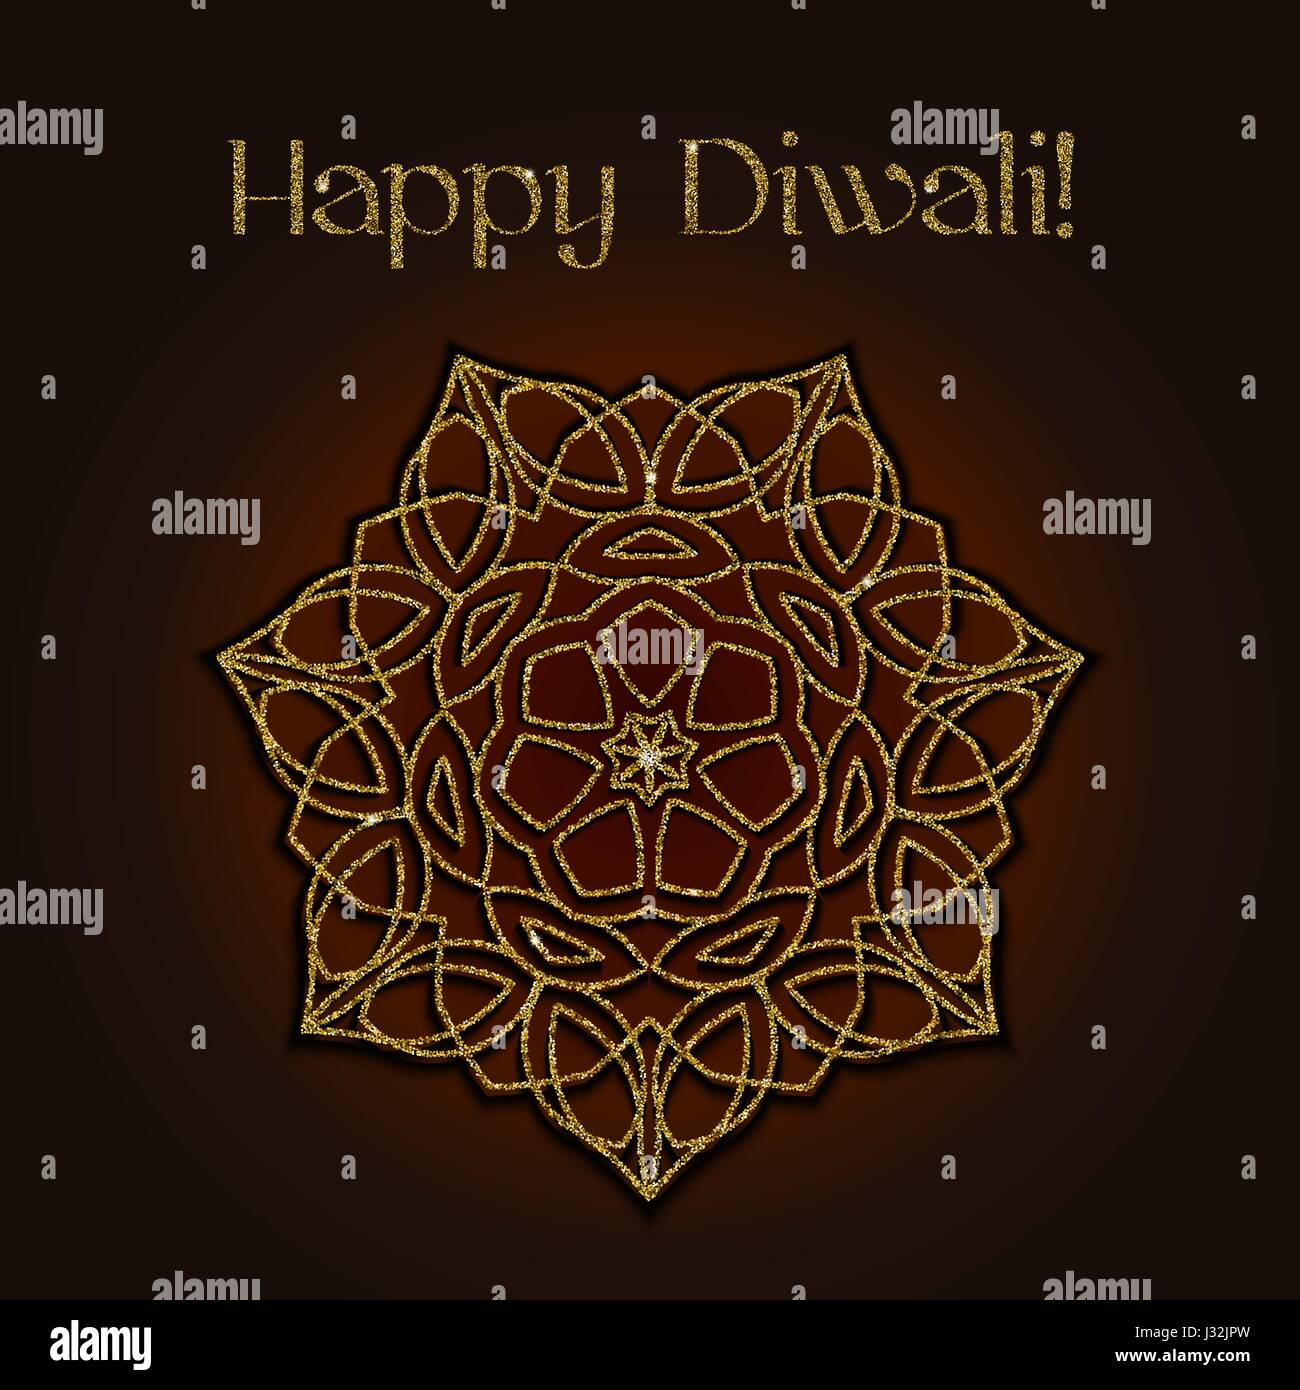 Diwali festival greeting card with gold glitter texture and mandala diwali festival greeting card with gold glitter texture and mandala m4hsunfo